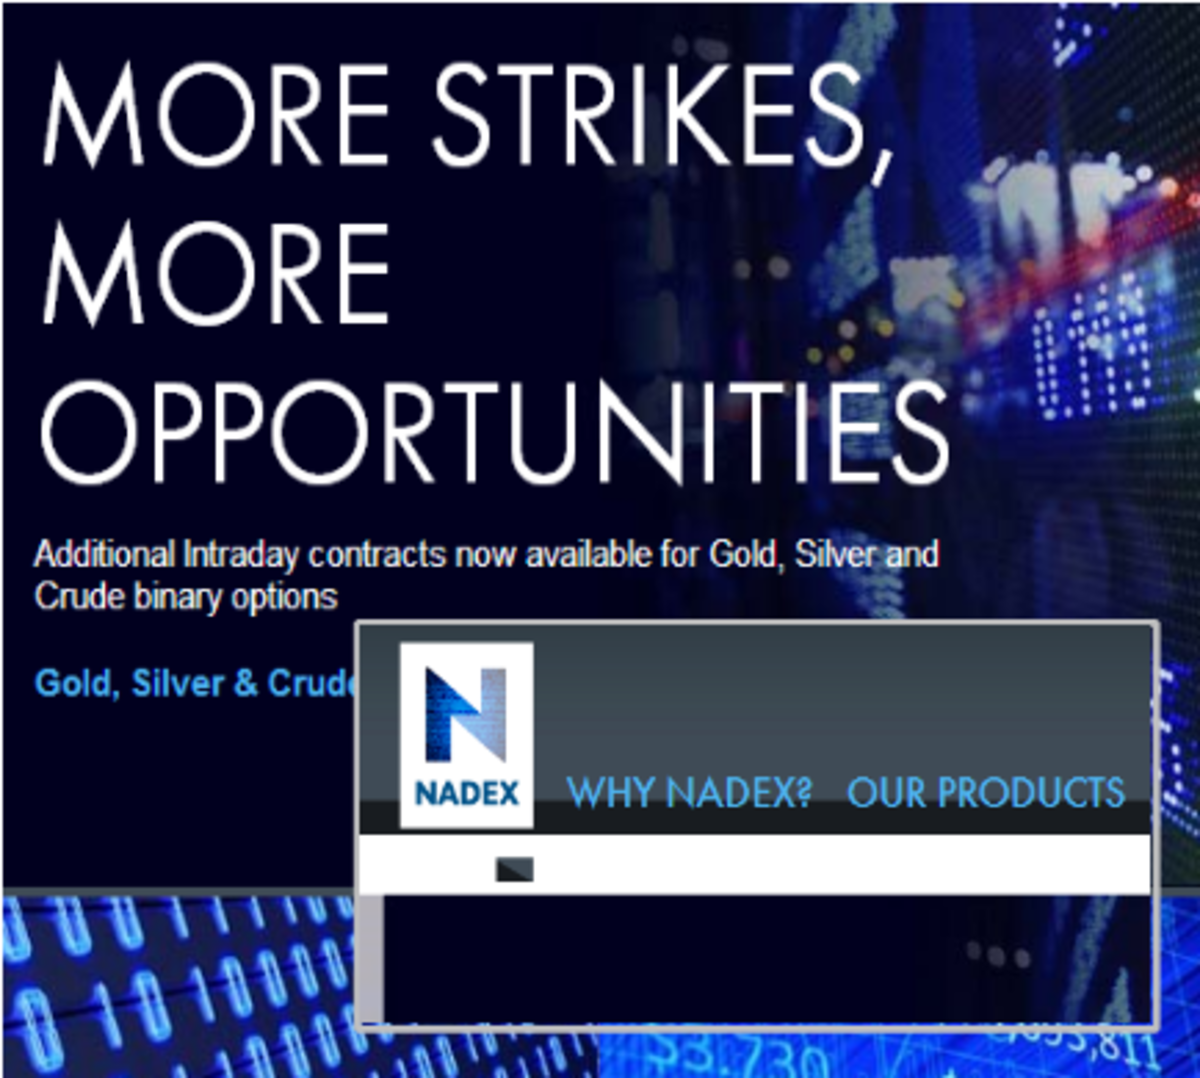 NADEX binary options are CFTC regulated. They are a fixed return all-or-nothing trading vehicle with a value of $0 or $100.